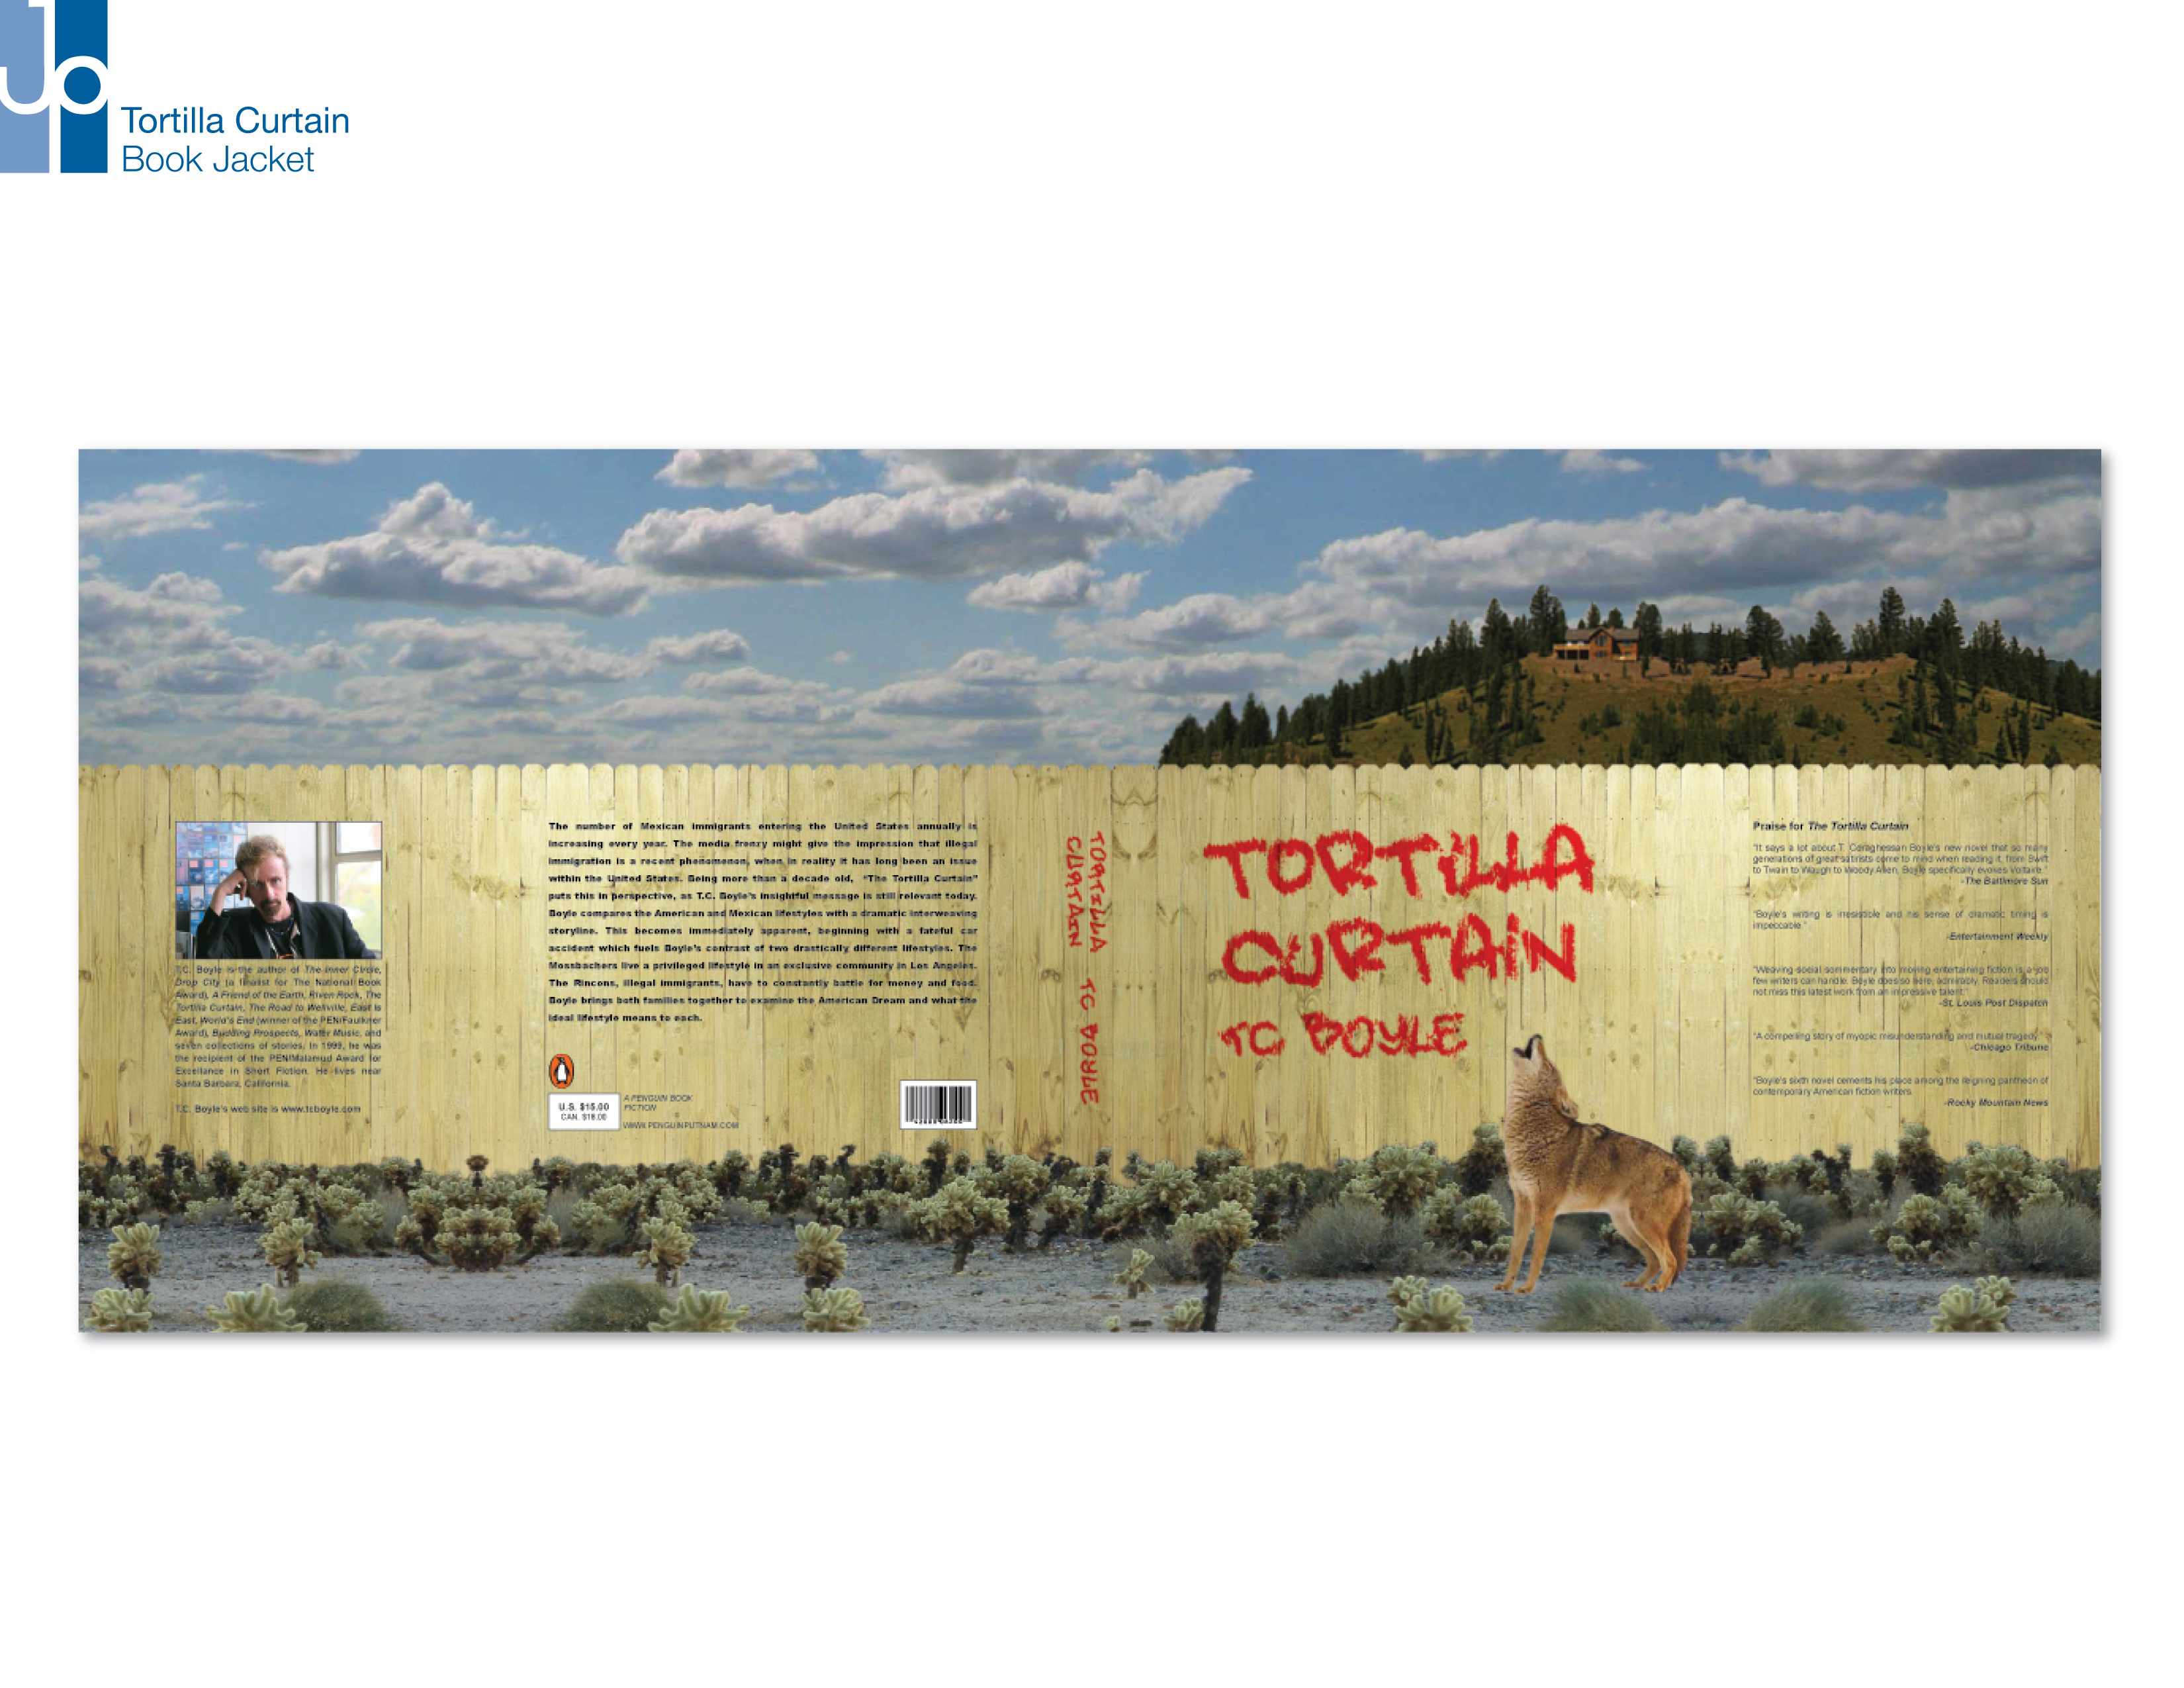 analysis of tortilla curtain by tc boyle The tortilla curtain penguin books with reading guides t coraghessan boyle 9780140238280 com chapters 1 3 summary and analysis the tortilla curtain study guide tc.